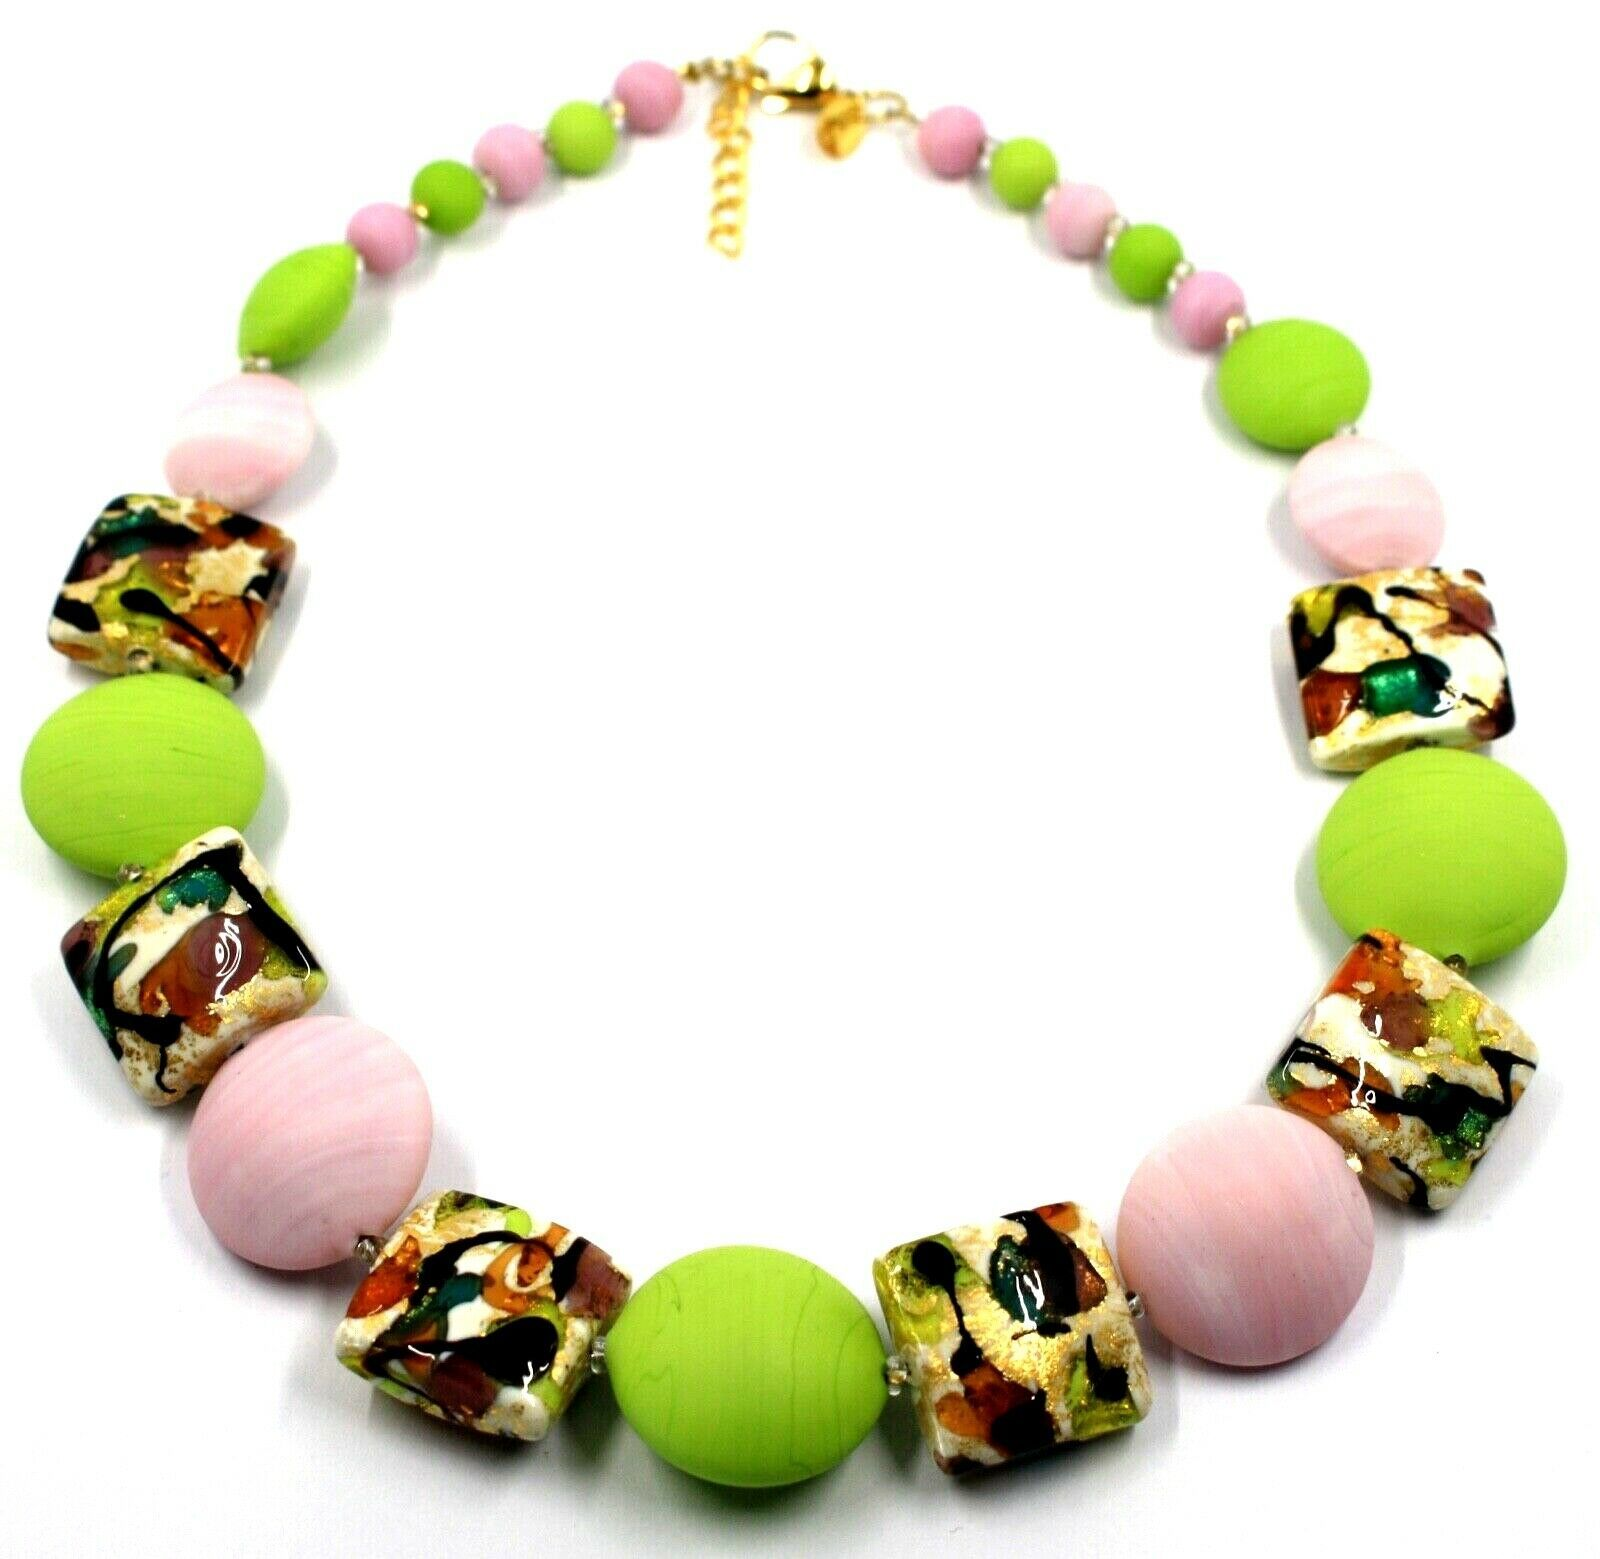 NECKLACE PINK GREEN SQUARE & DISC, MURANO GLASS, GOLD LEAF, MADE IN ITALY